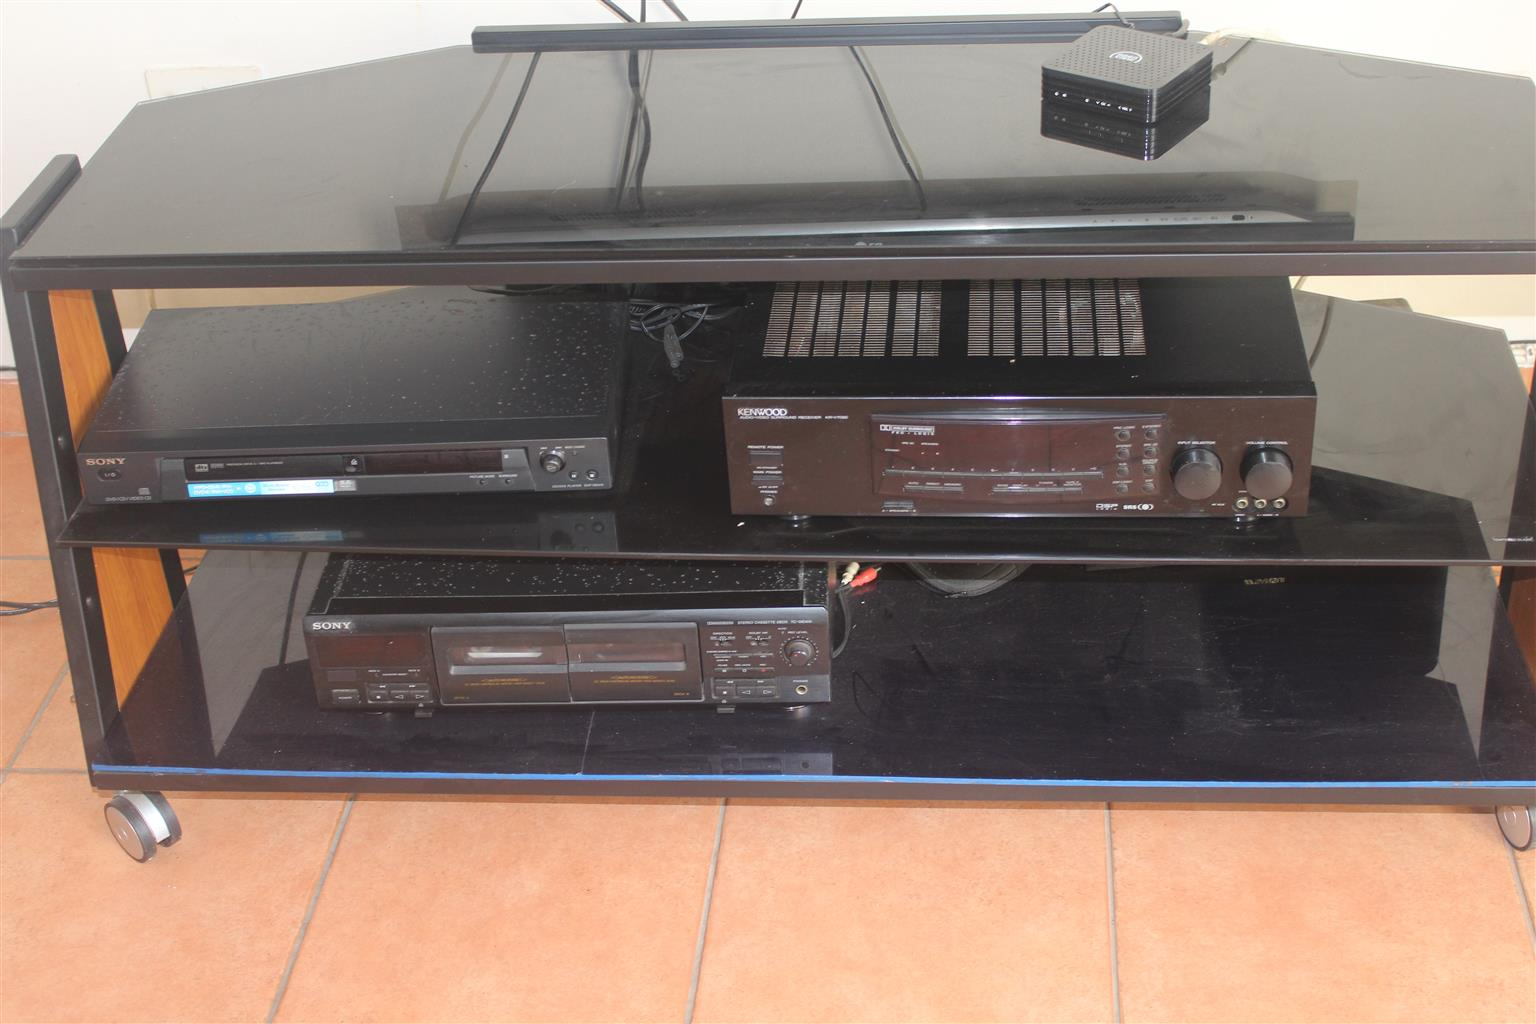 Kenwood KRF-V7090D-S - Amplifier and AV receiver - 7.1 channel Specs with Surroundd Sound